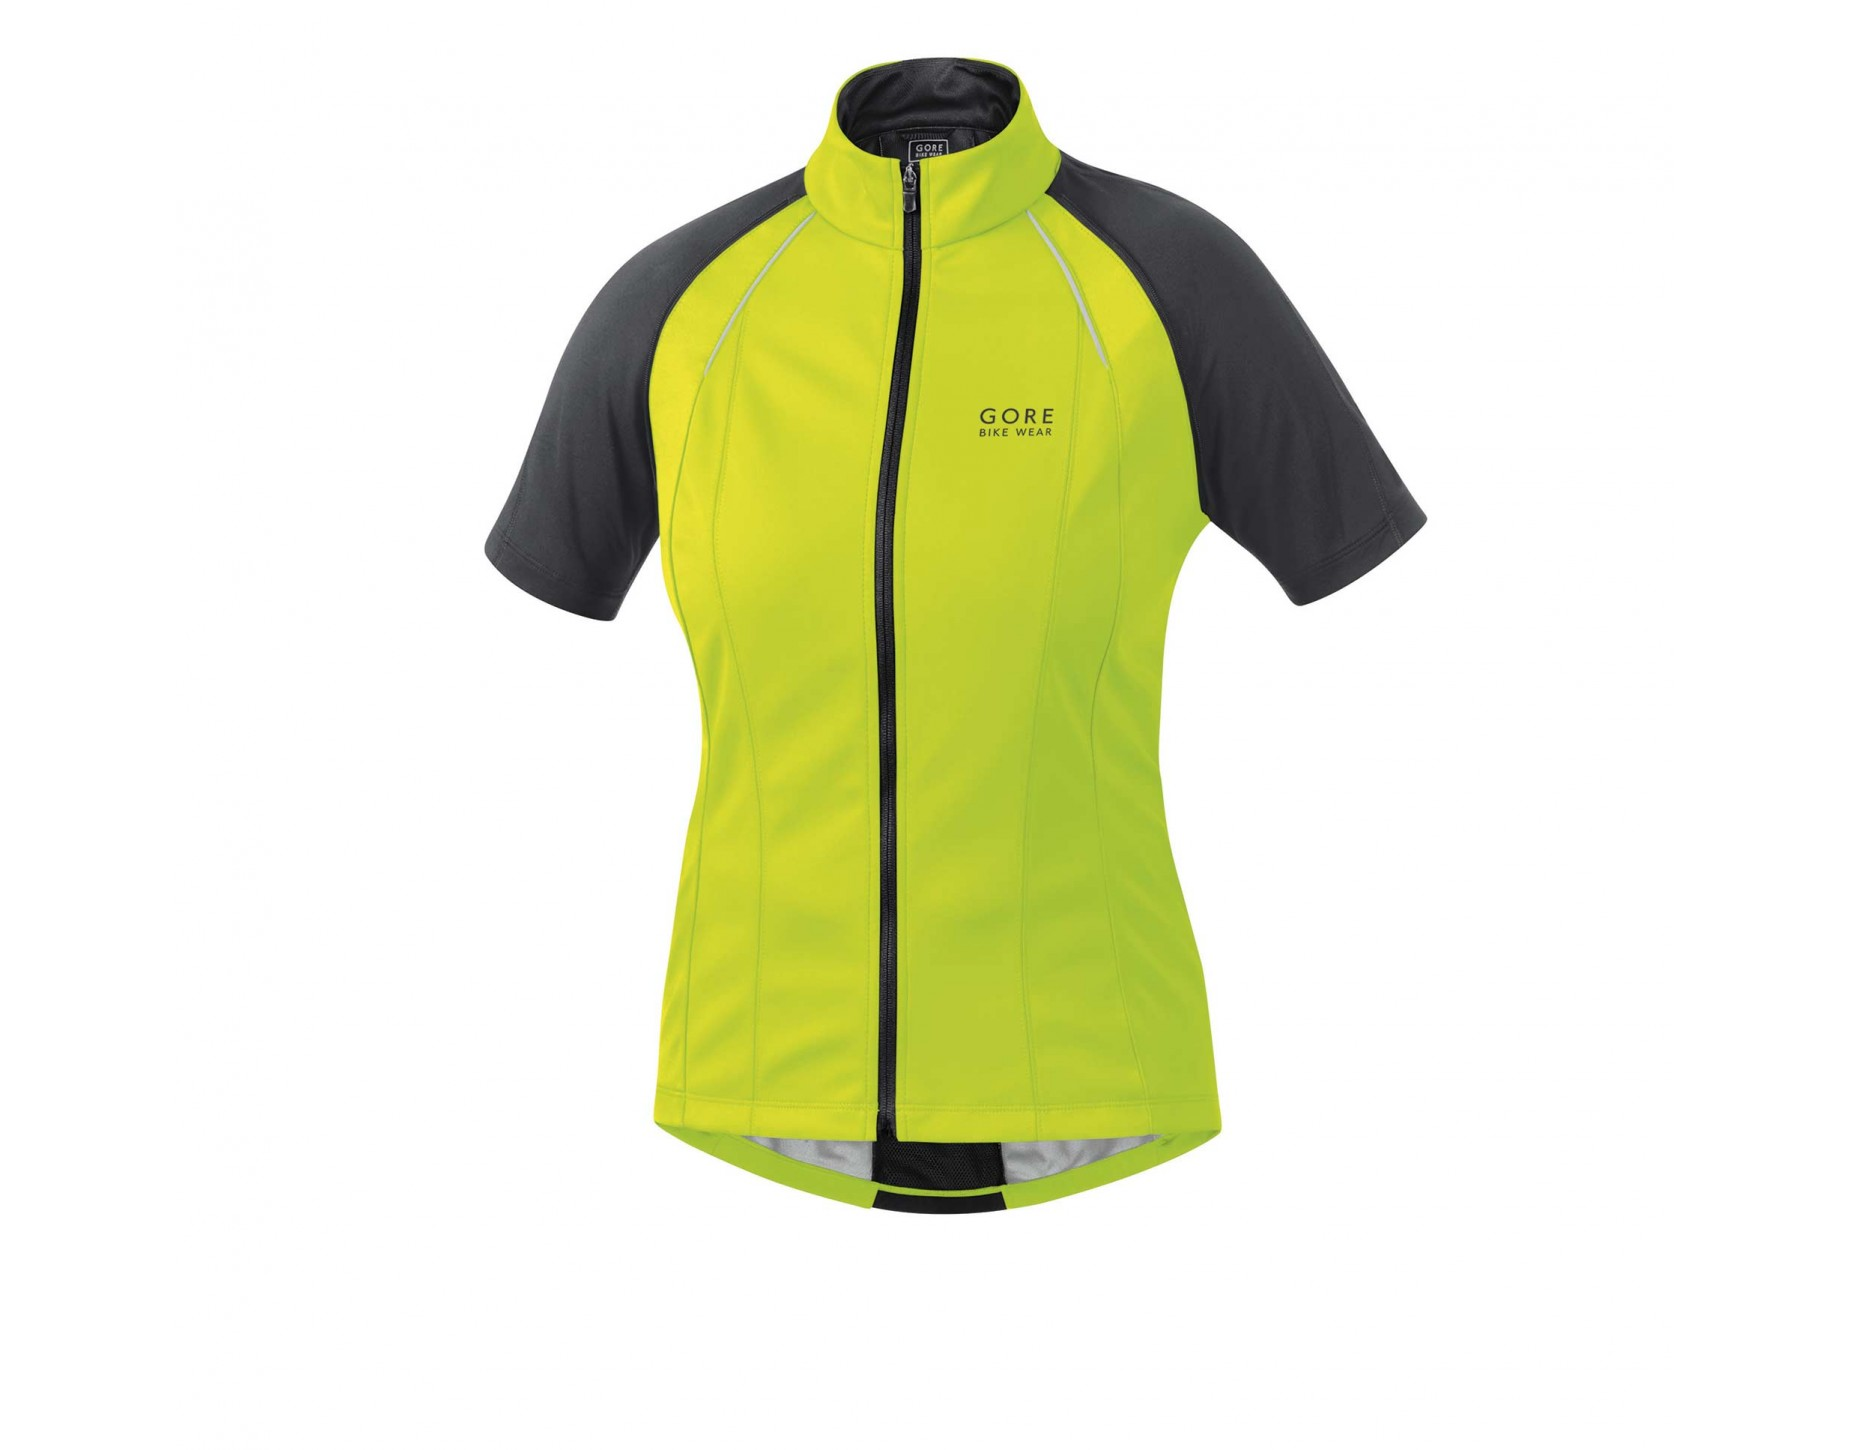 black single women in yellow jacket Find great deals on ebay for black and yellow jacket and men black and yellow jackets shop with confidence.